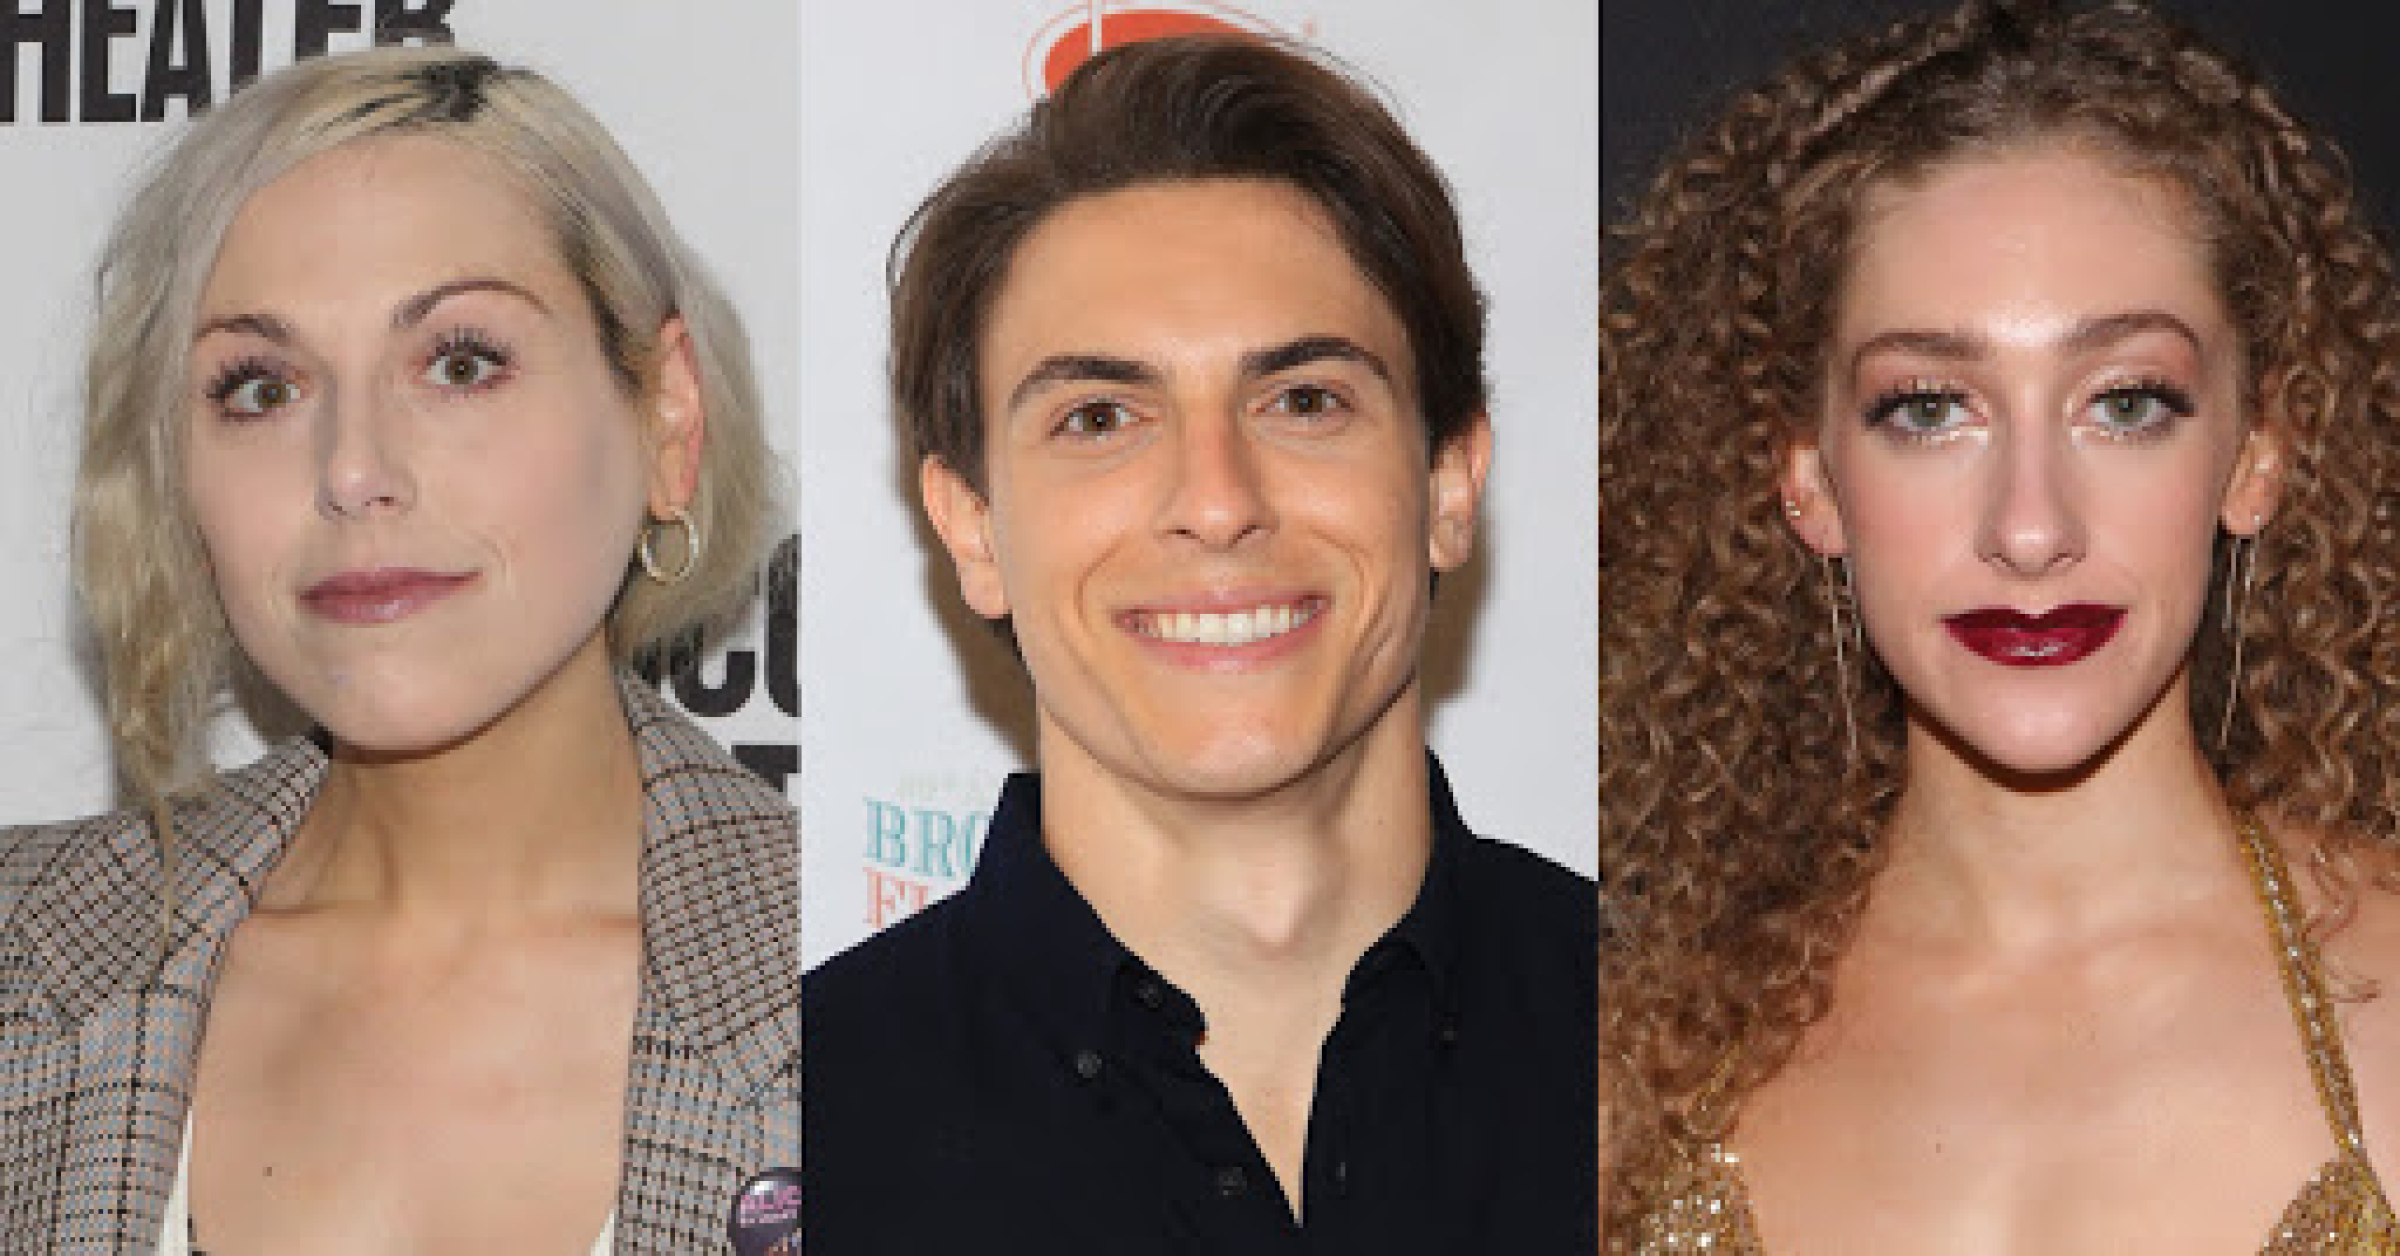 Natalie Walker Derek Klena Micaela Diamond Natalie Walker And More To Star In